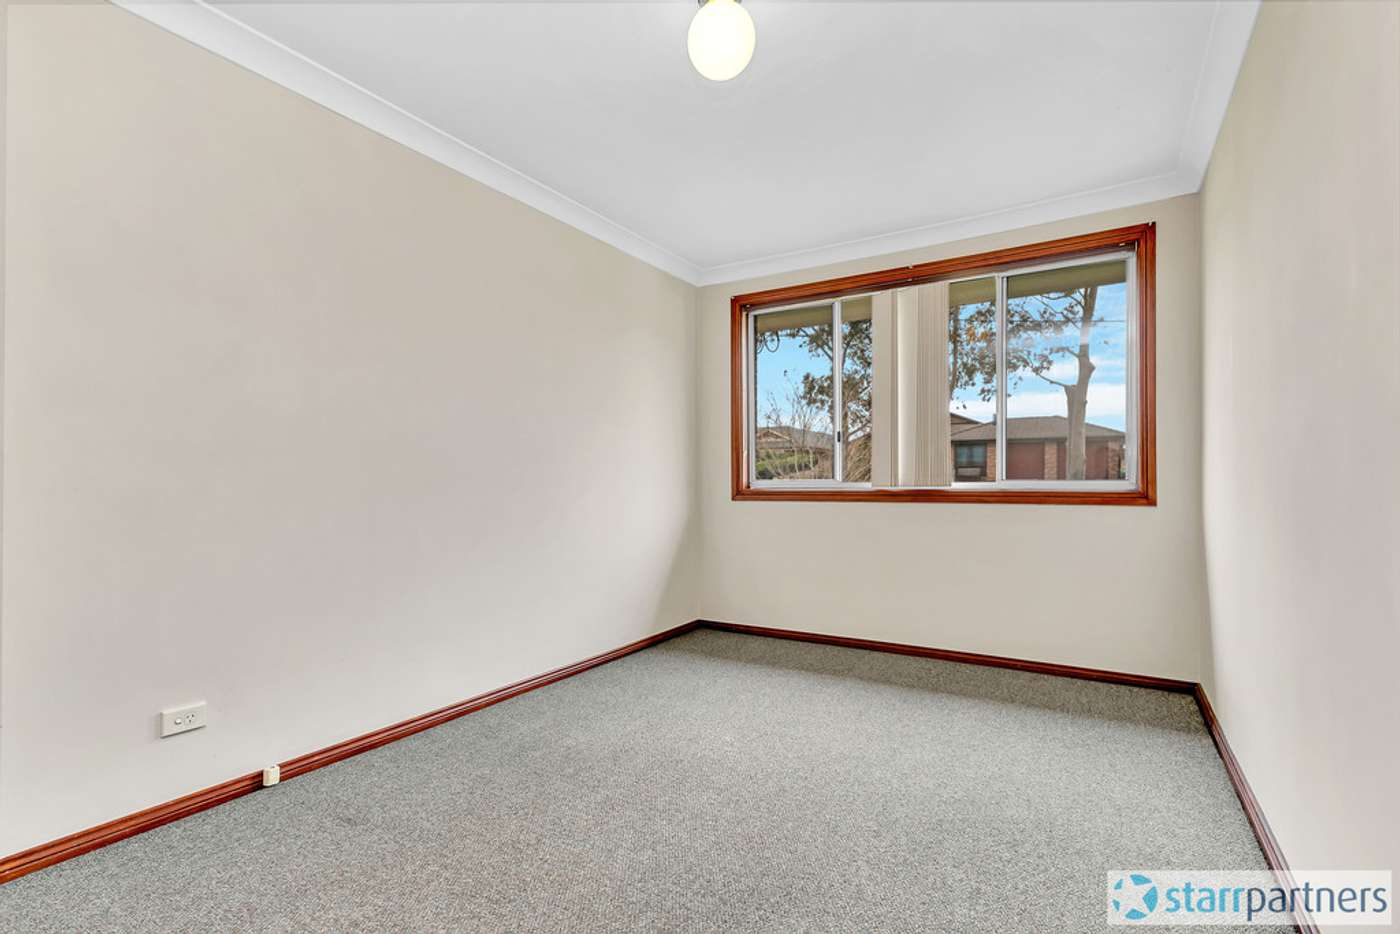 Sixth view of Homely house listing, 1/10 Wolseley Rd, Mcgraths Hill NSW 2756